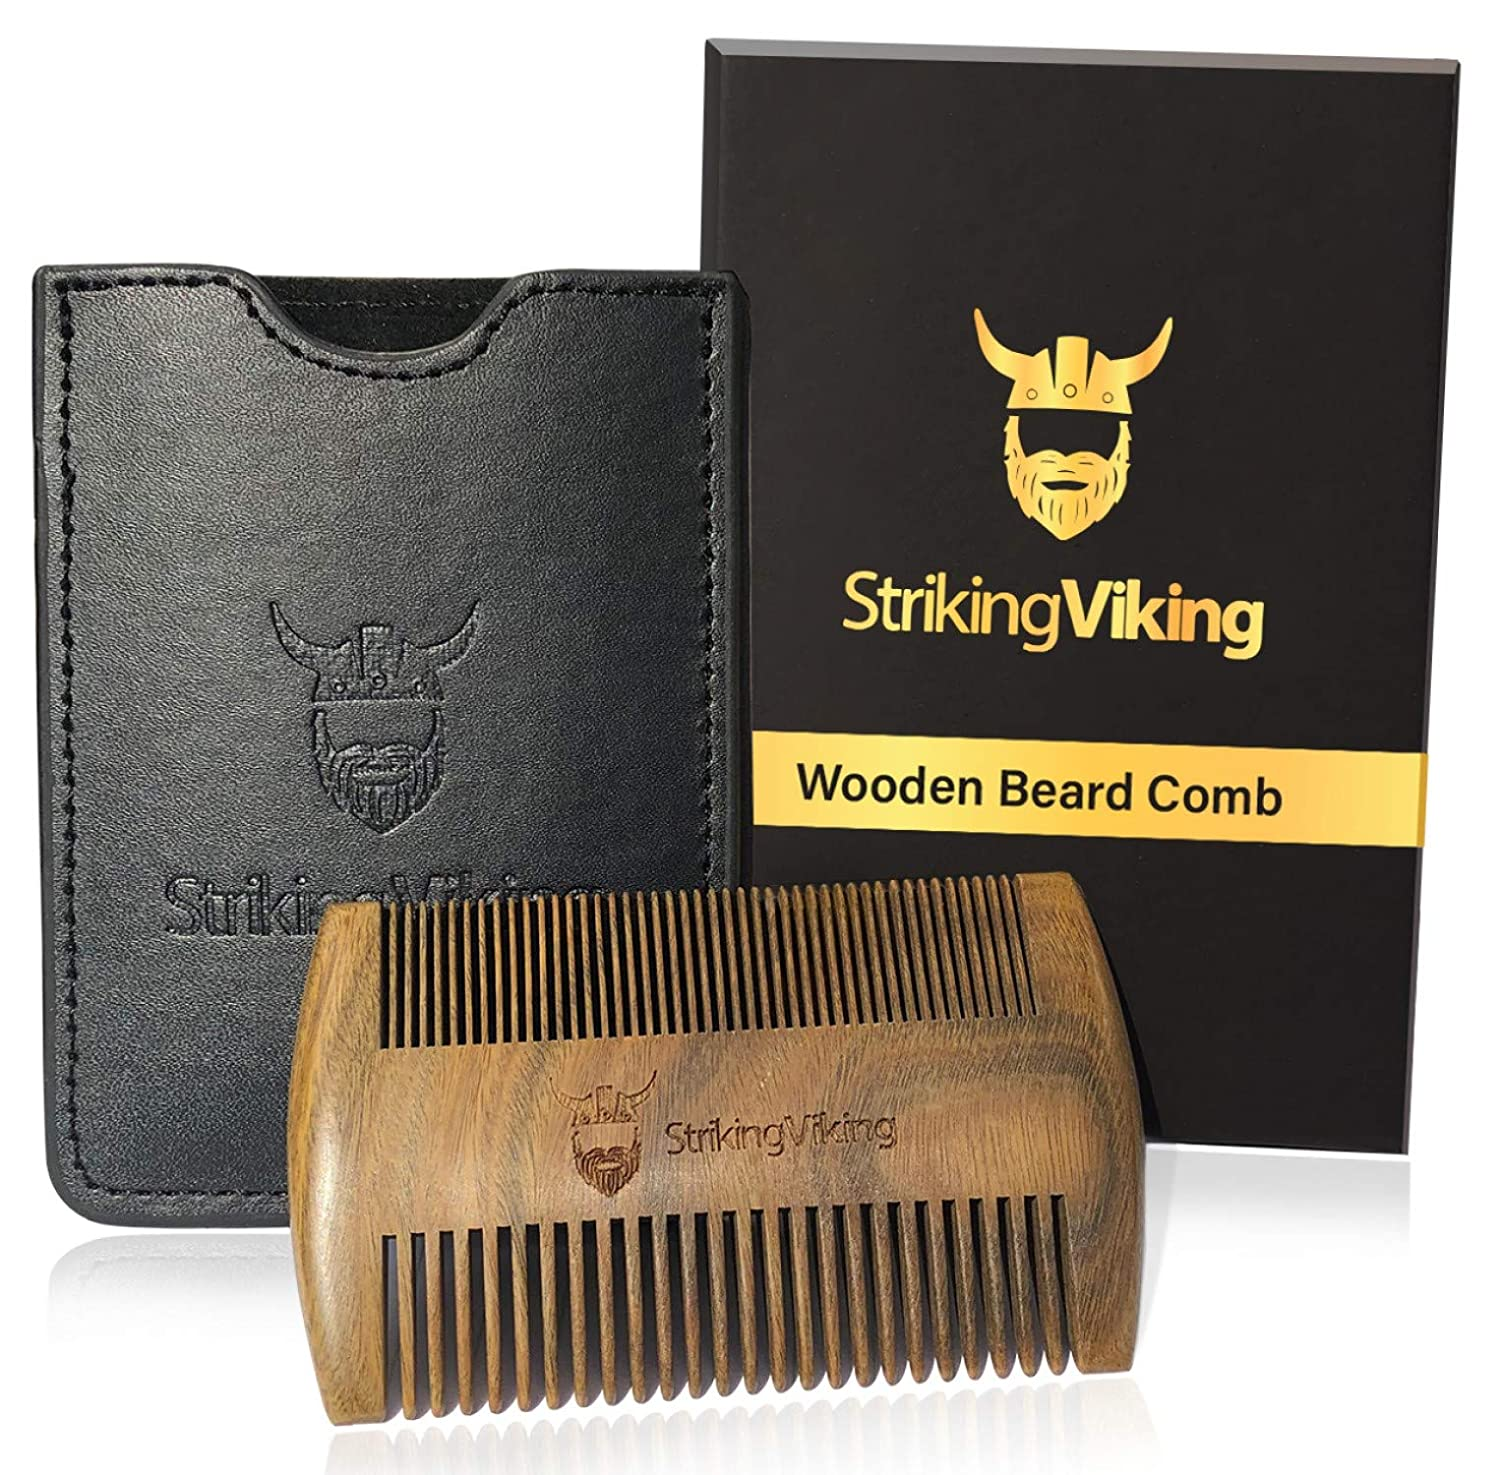 Striking Viking Wooden Beard Comb & Case